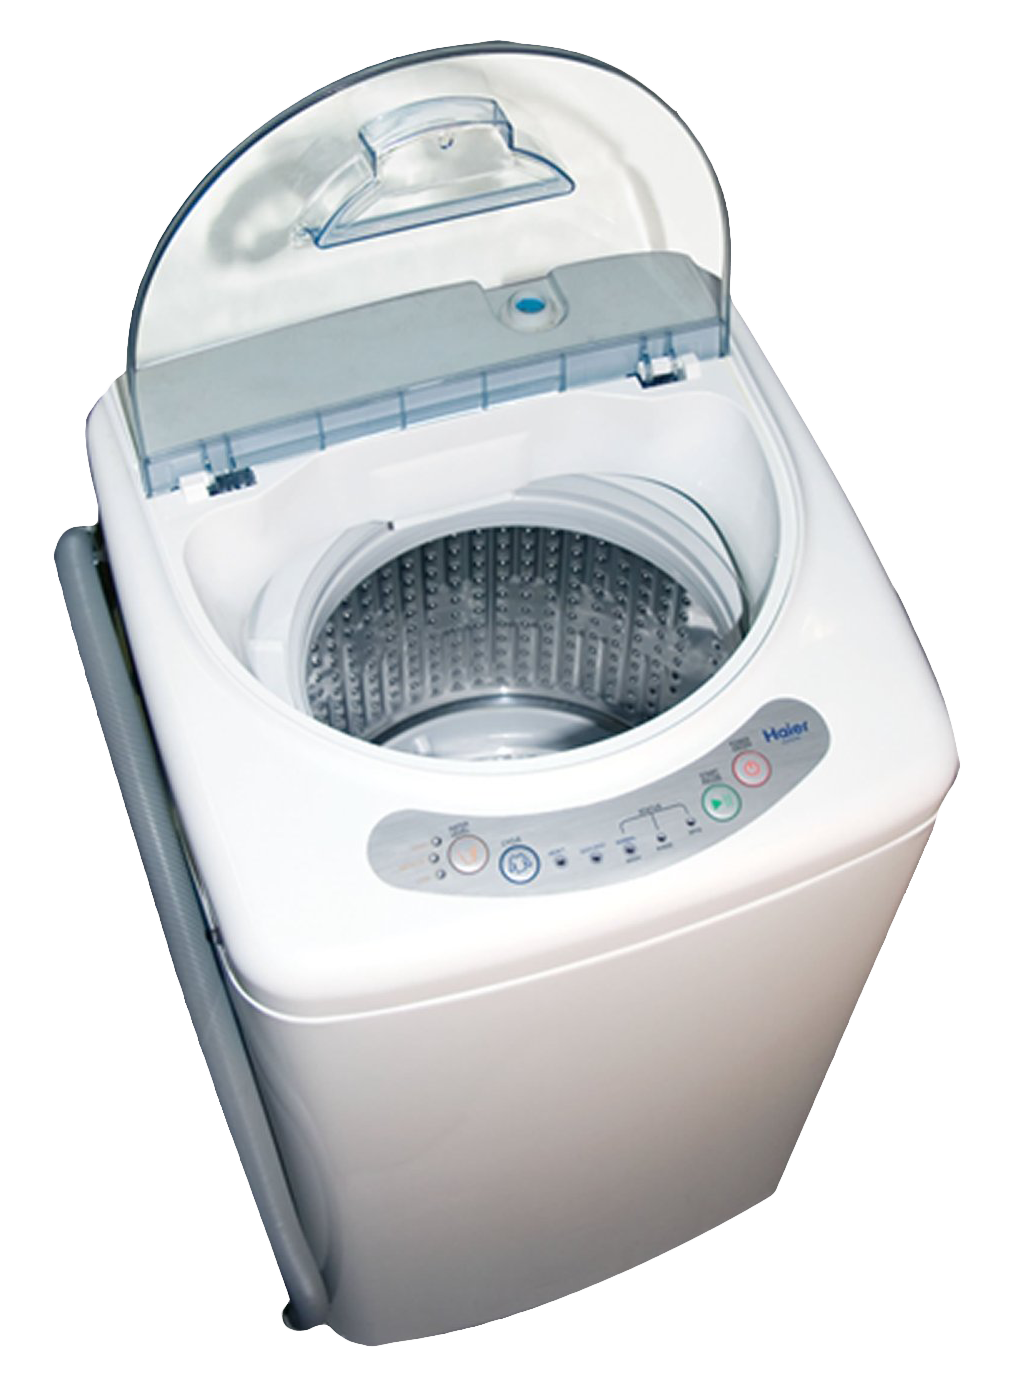 washing machine top view png image pngpix #20618